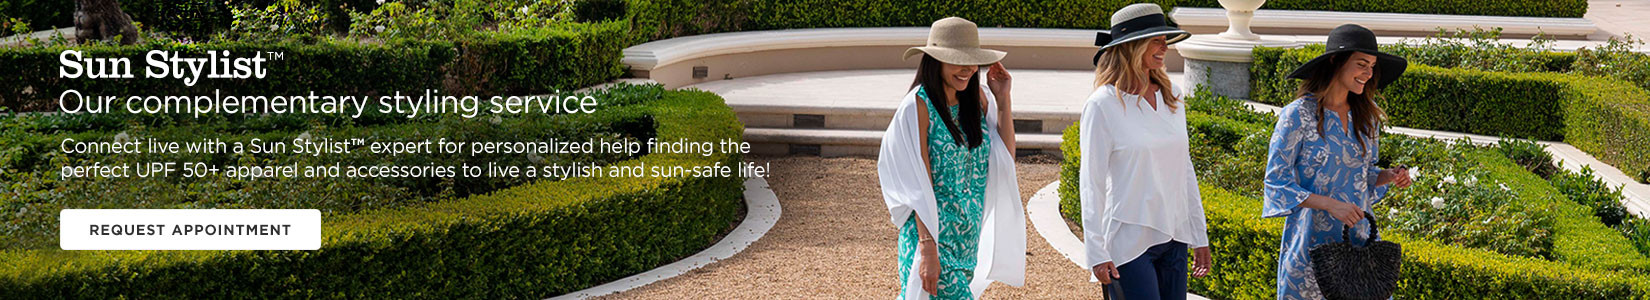 Sun Stylist - Our complimentary styling service. Connect live with a Sun Stylist expert for personalized help finding the perfect UPF 50+ apparel and accessories to live a stylish and sun-safe life!